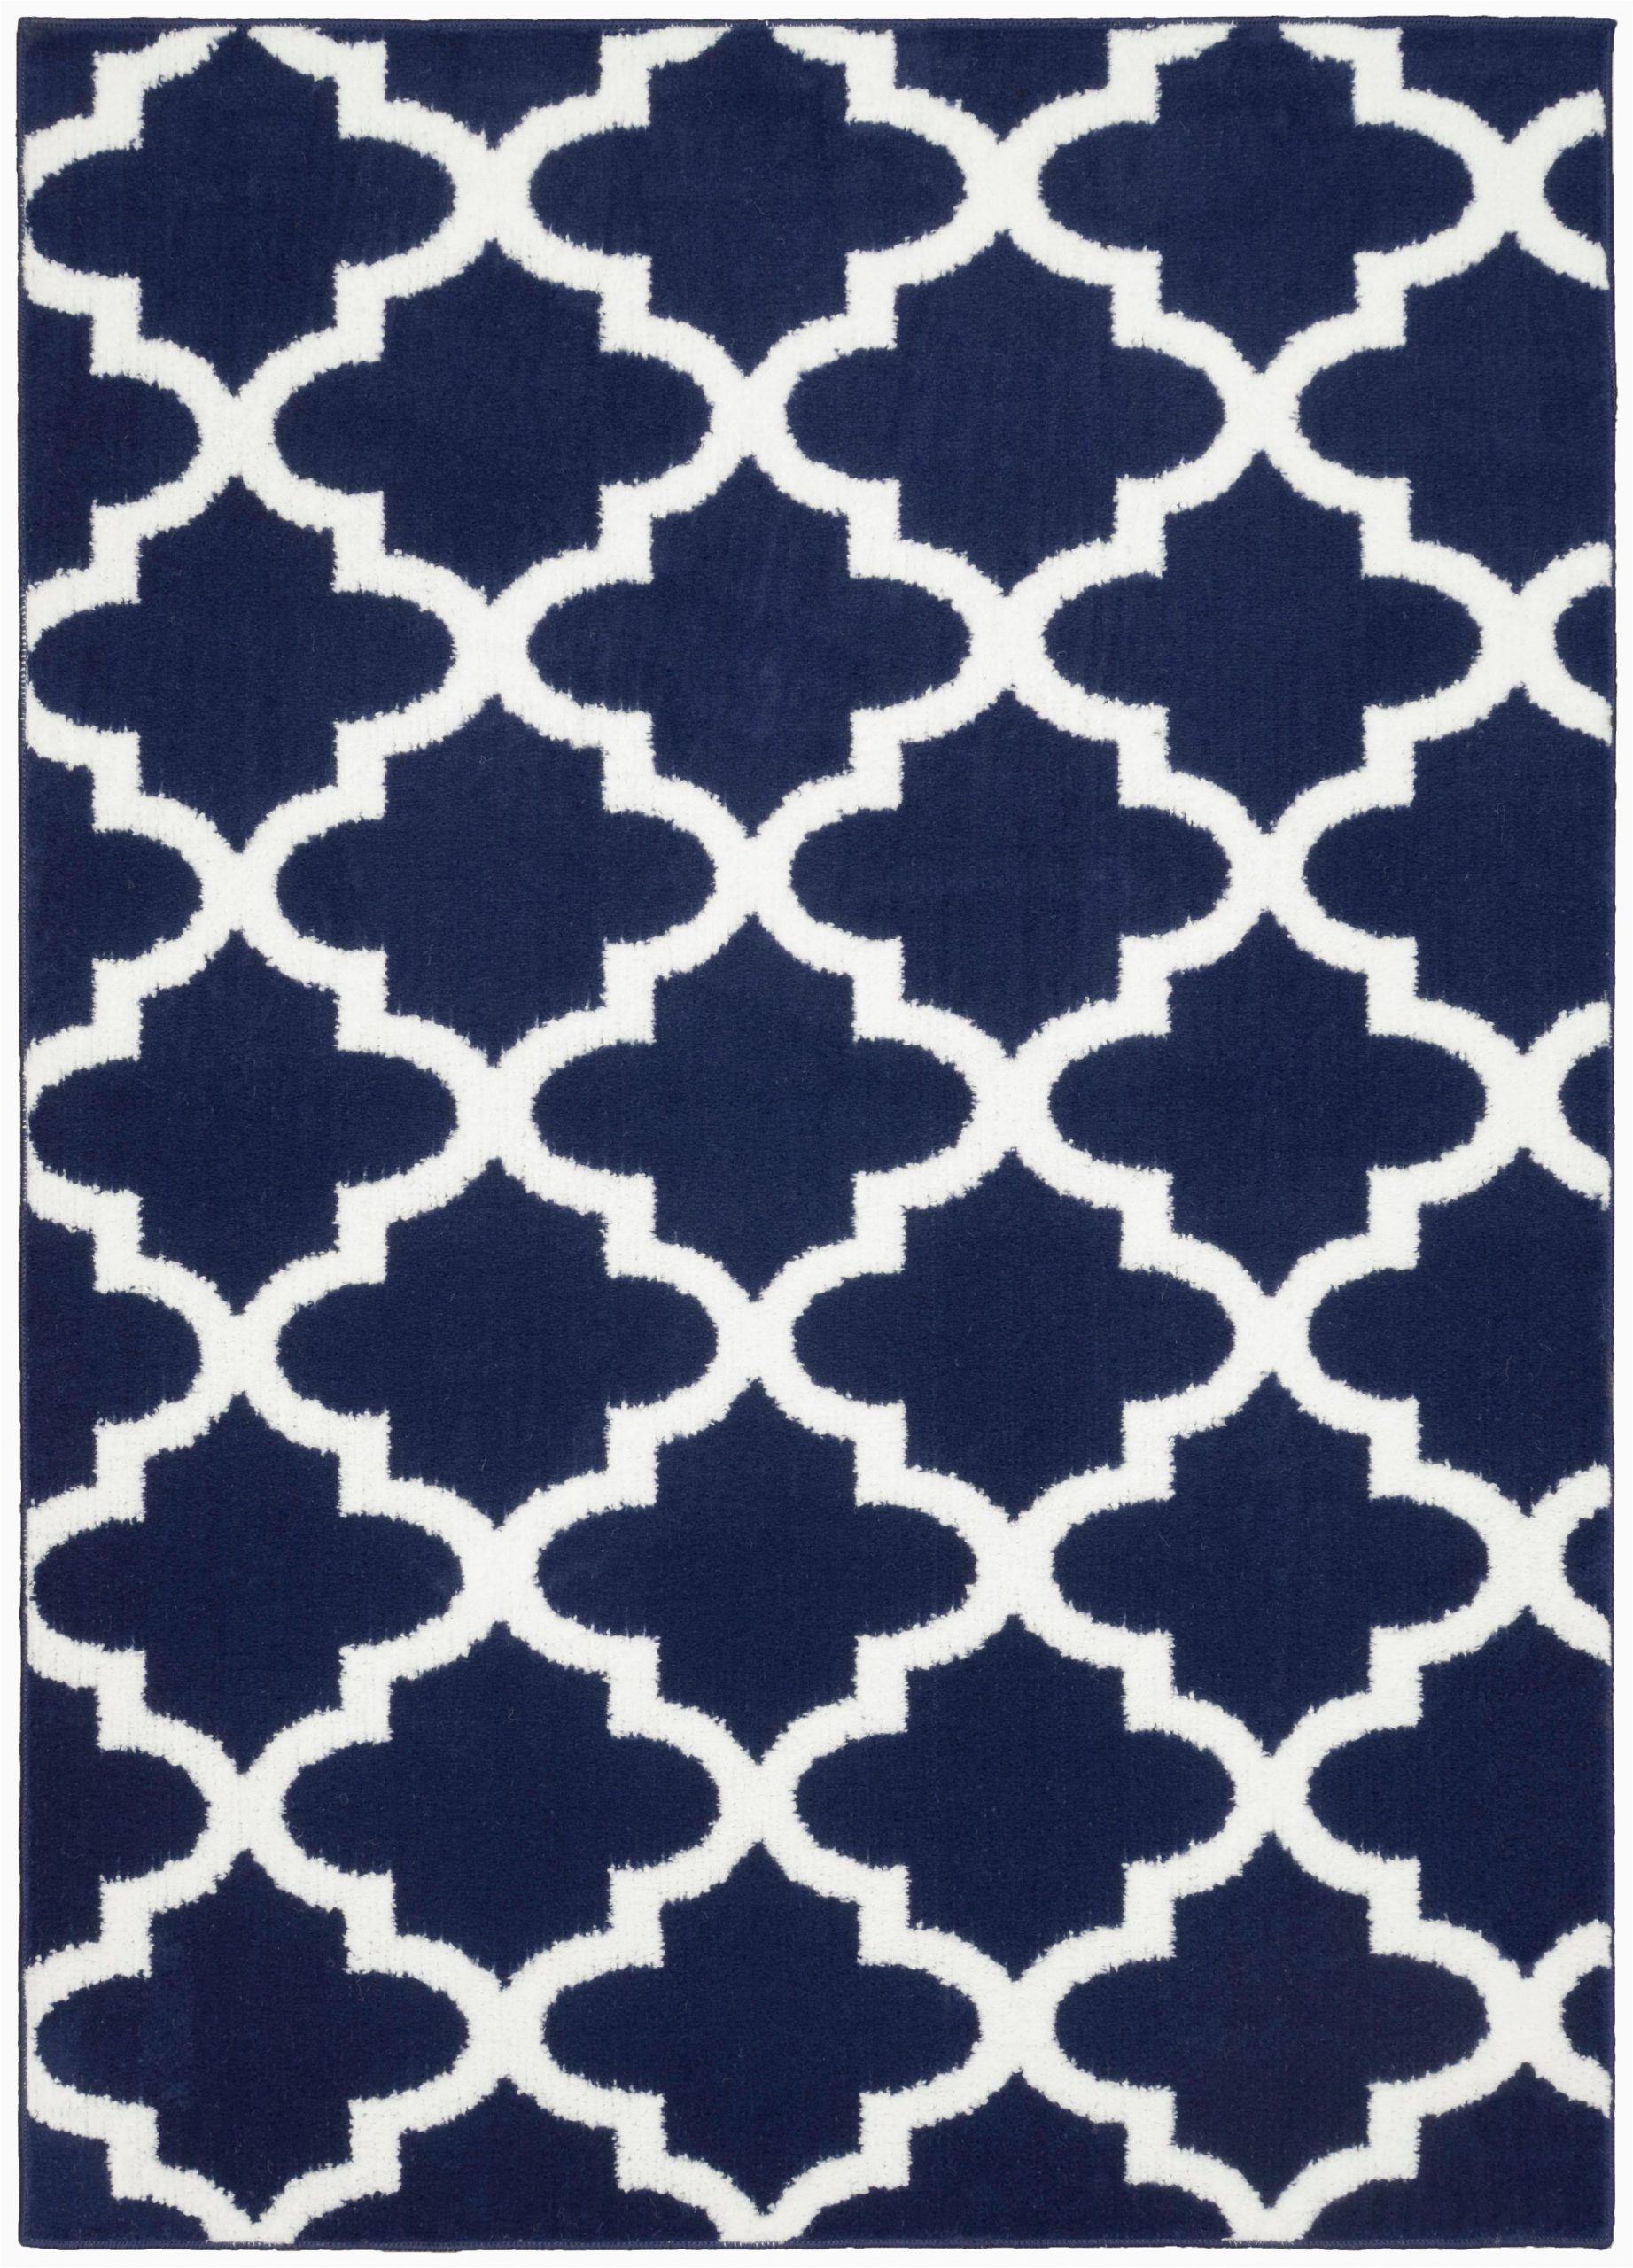 Mainstays Titan area Rug Black Mainstays Quatrefoil Navy White 5 X7 Geometric Indoor area